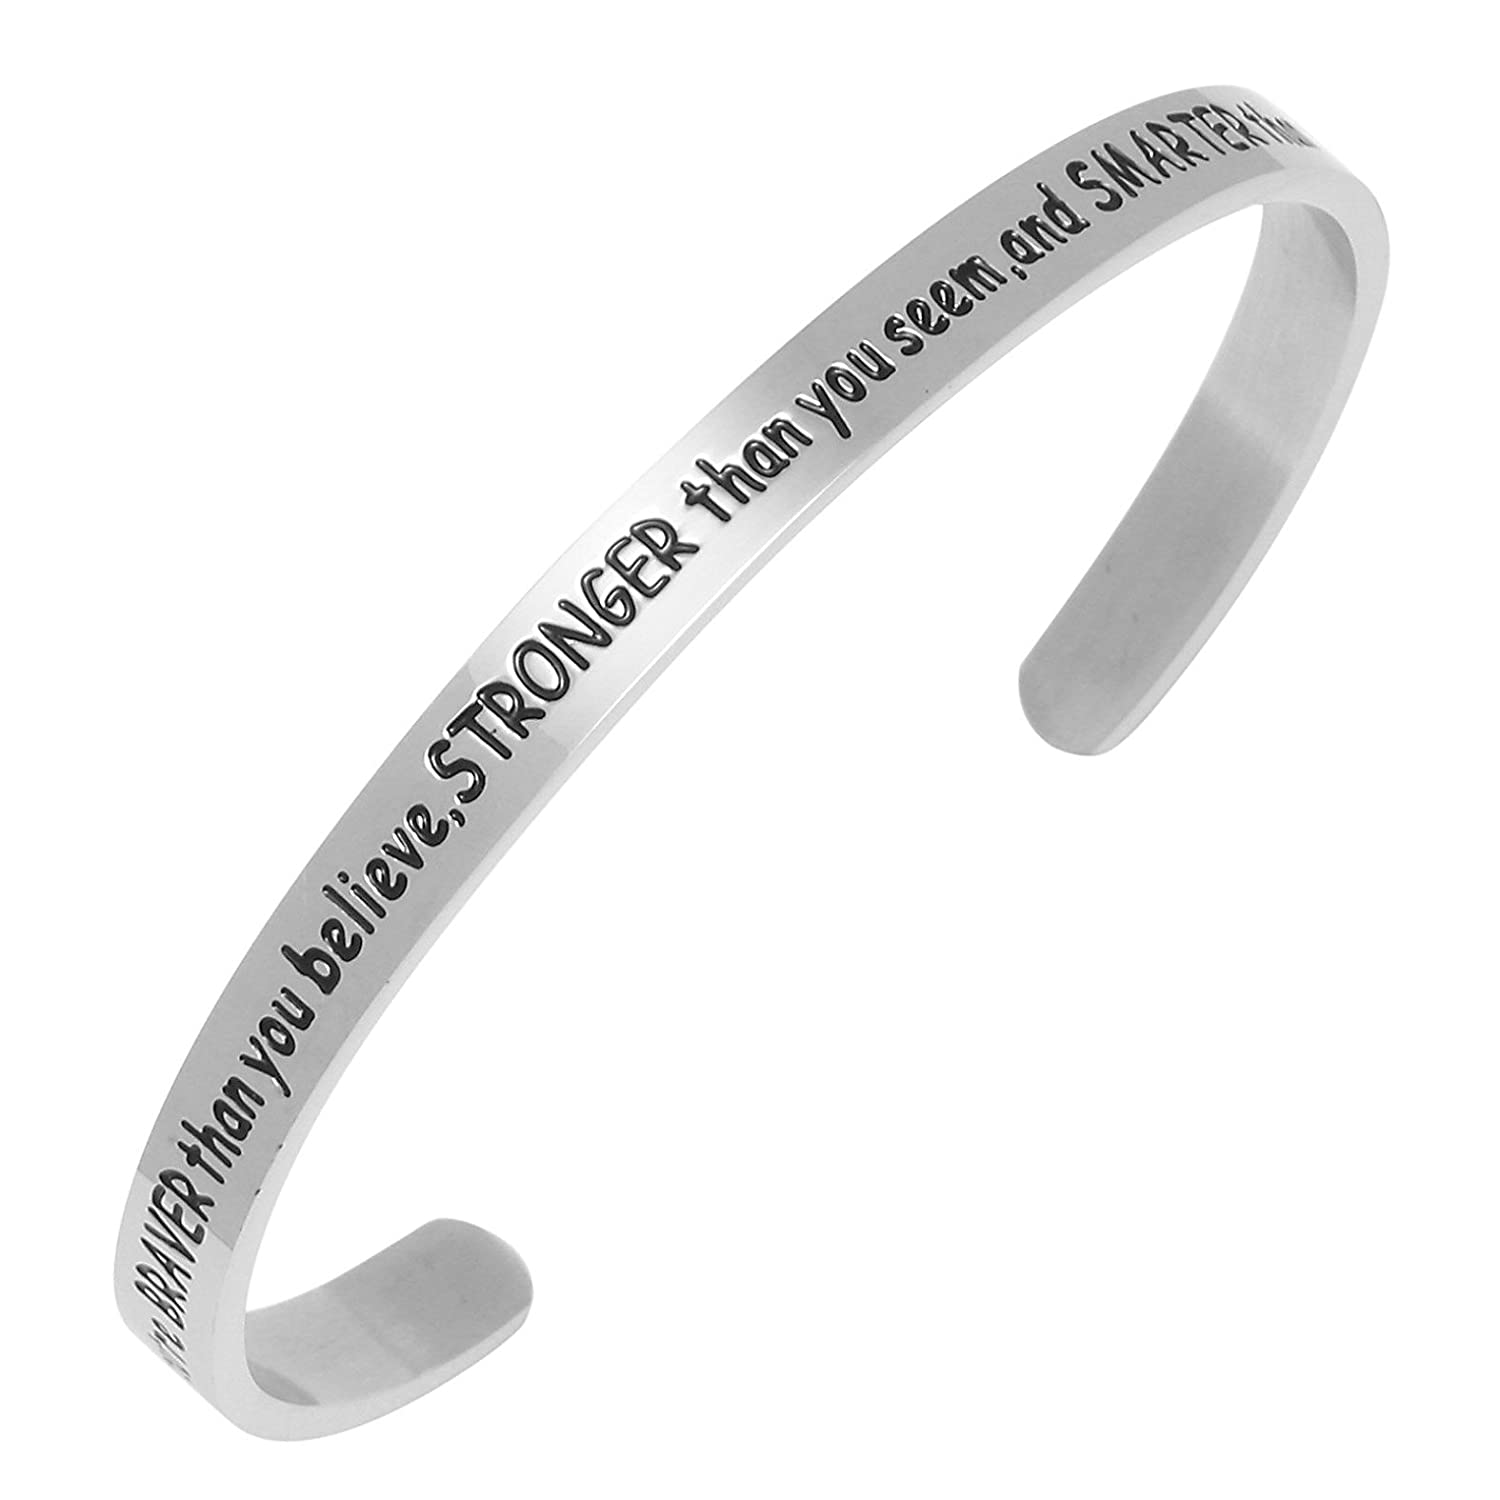 Sunflower Jewellery Cuff Bangle Bracelet You are Braver Than You Believe Stainless Steel Inspirational Jewelry UK_B075L47KSC